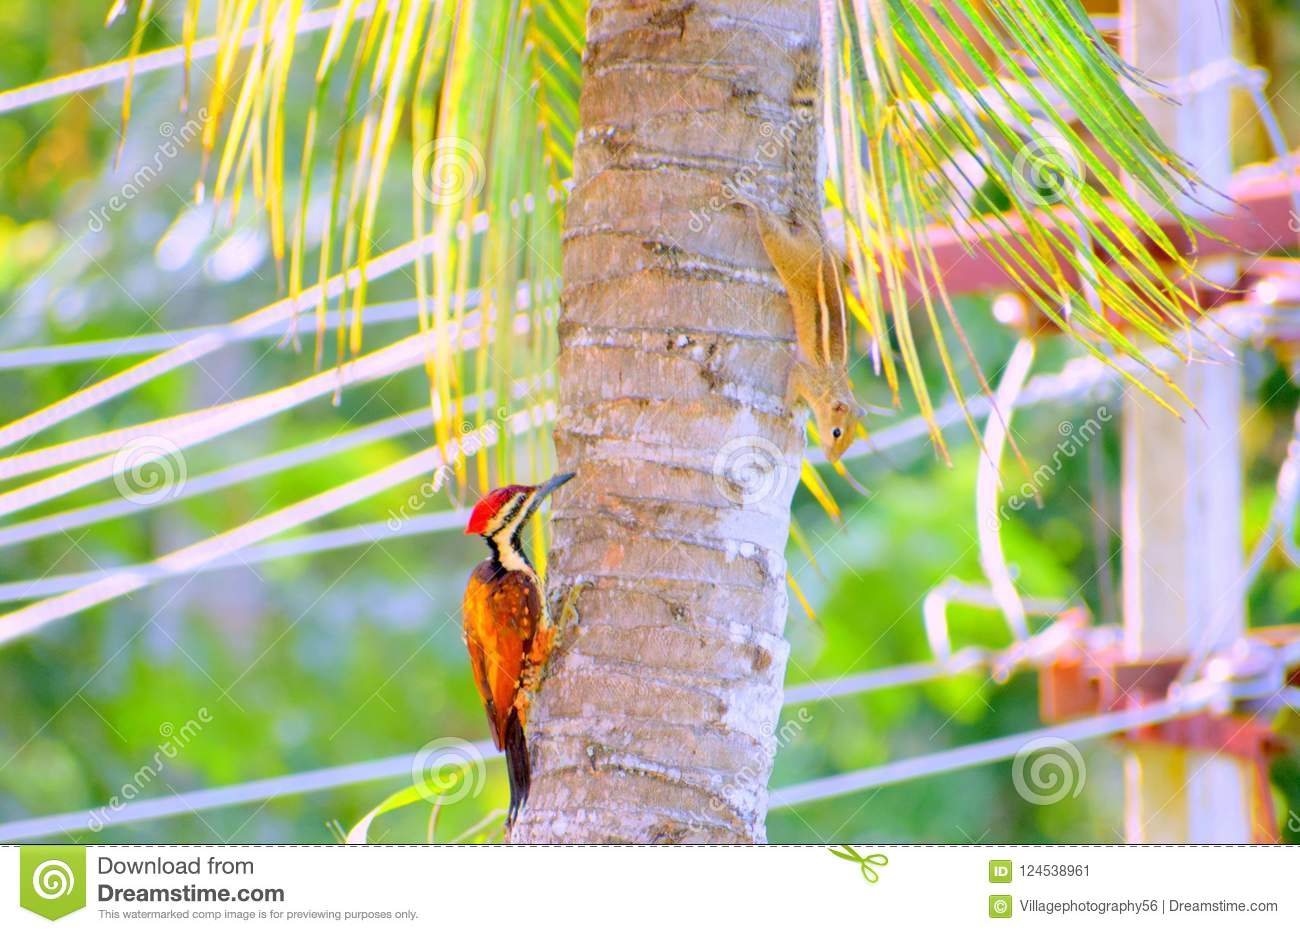 A wood pecker and an Indian squirrel playing hide & seek on a tree